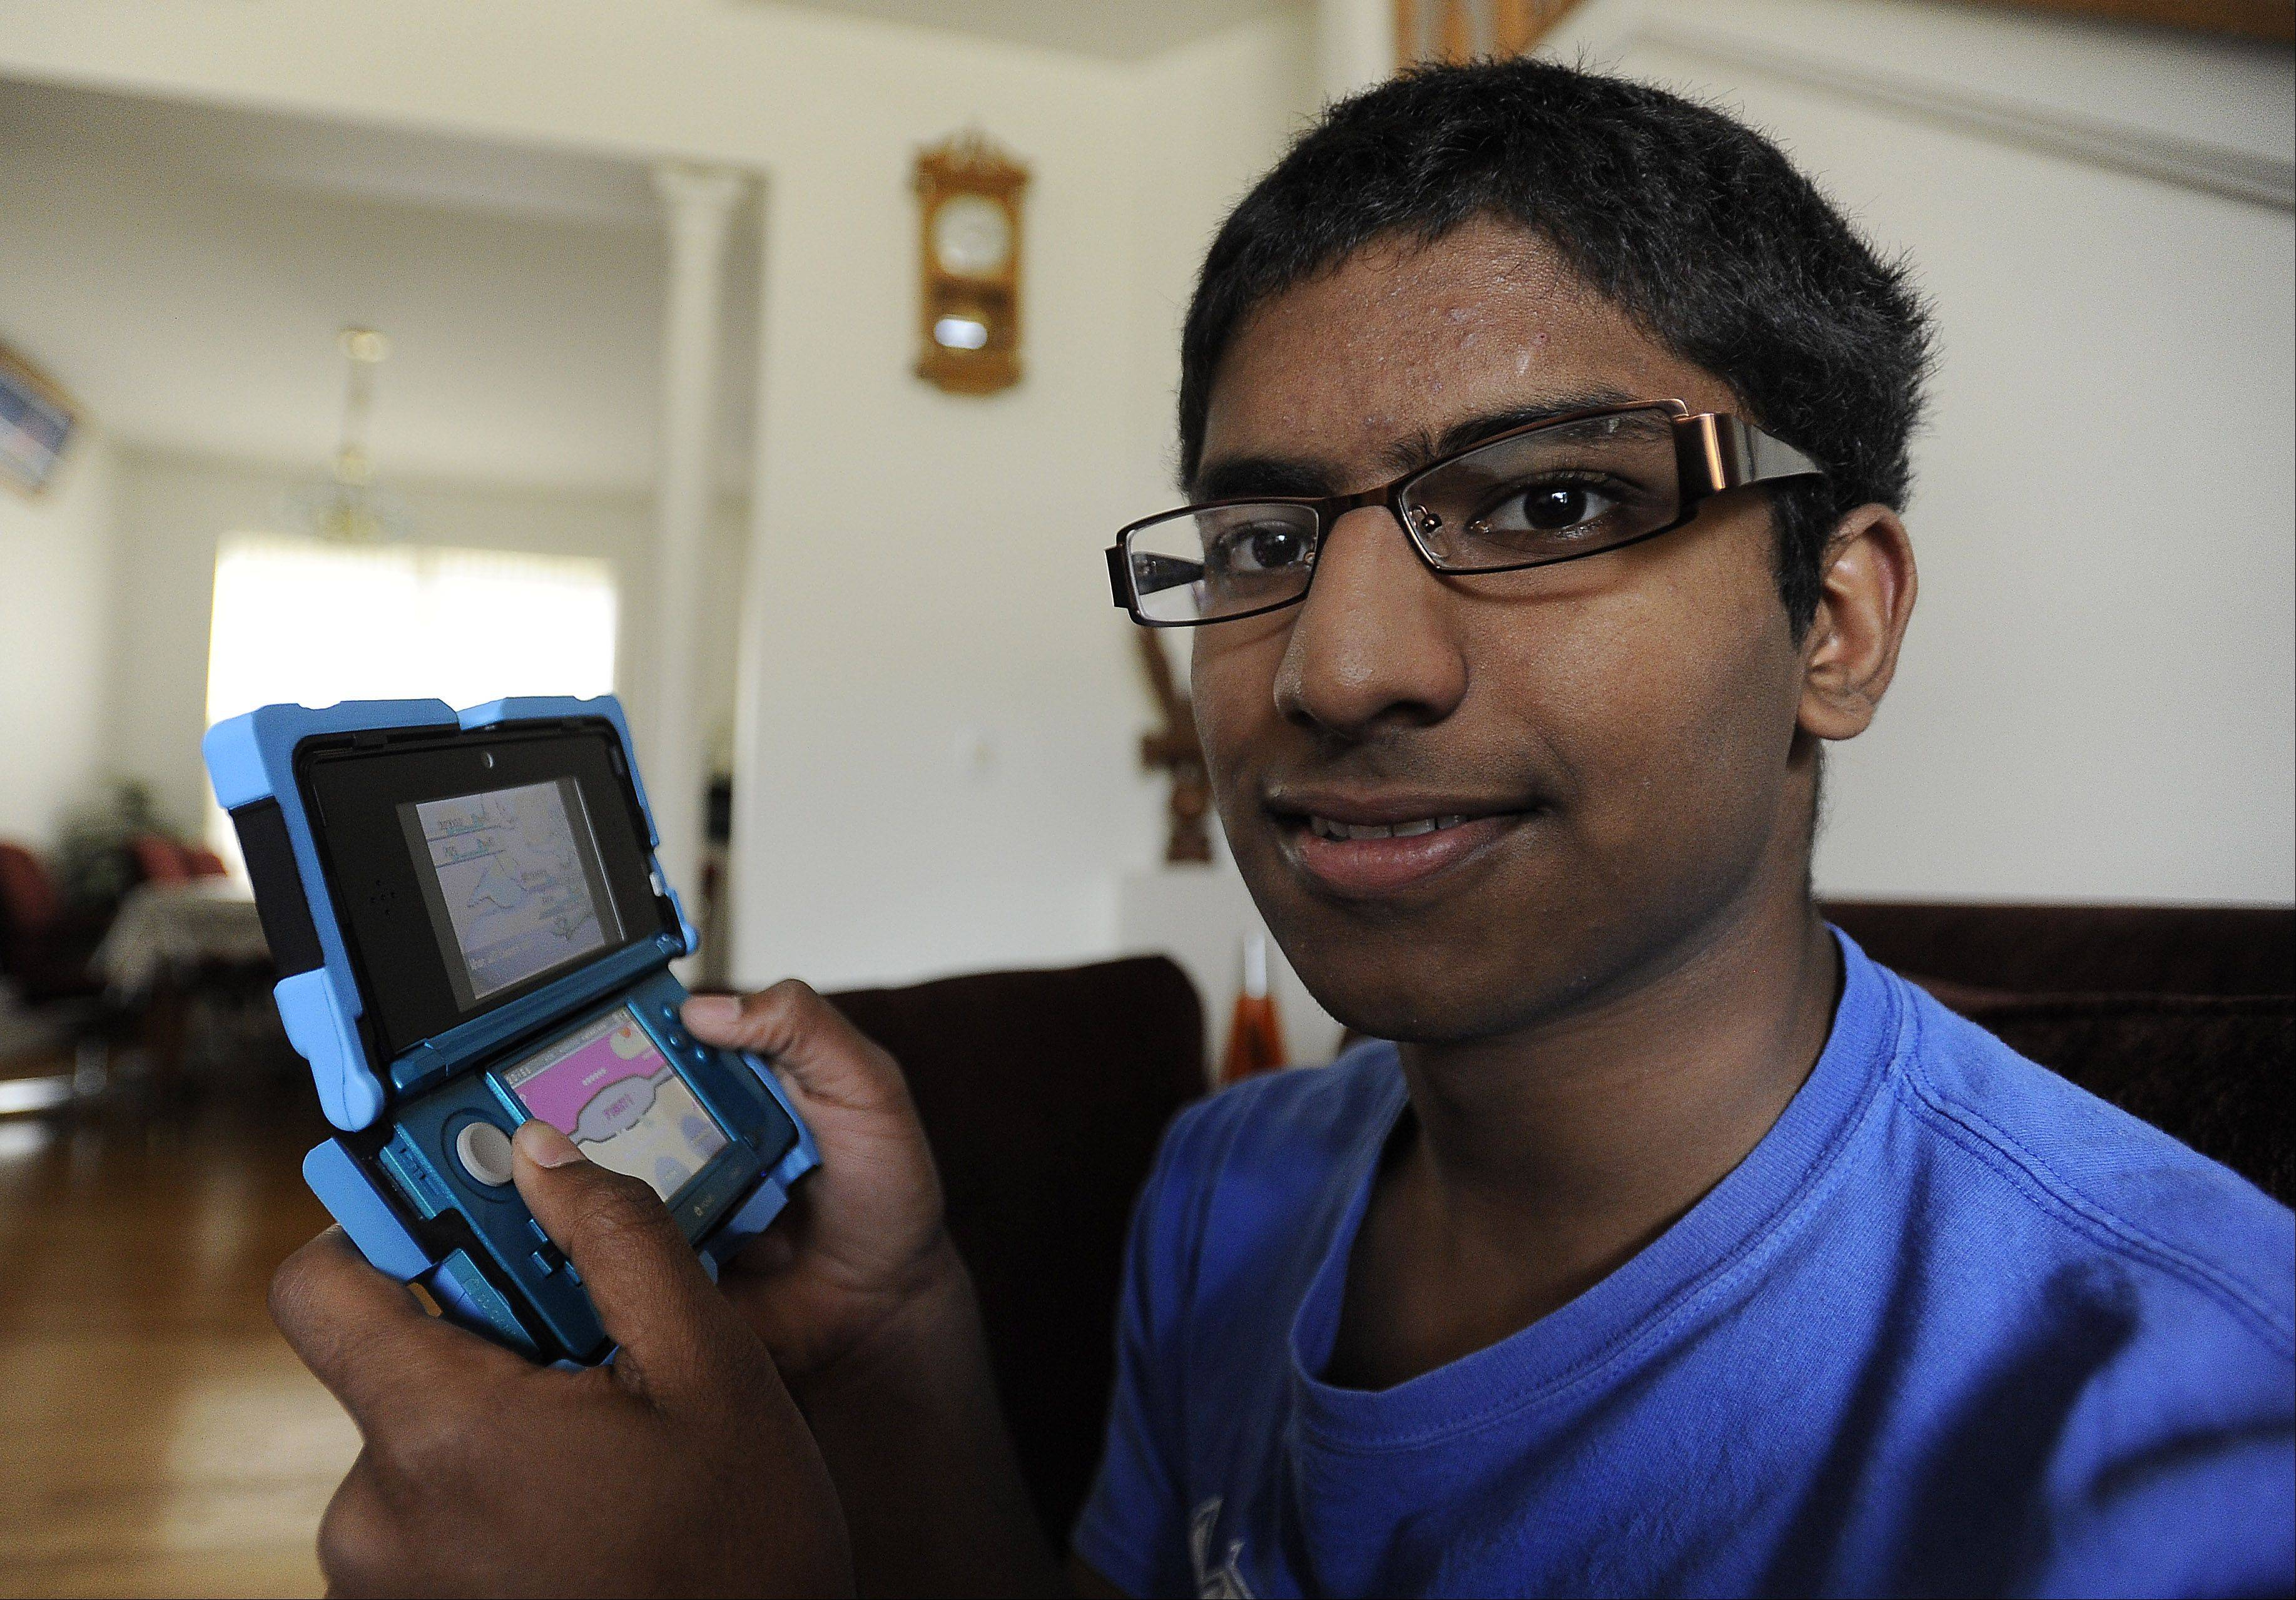 Manoj Sunny, 16, of Des Plaines is headed to Hawaii in August for the 2012 World Pokemon Championships. He is one of 36 Americans who will be representing the nation in the event.